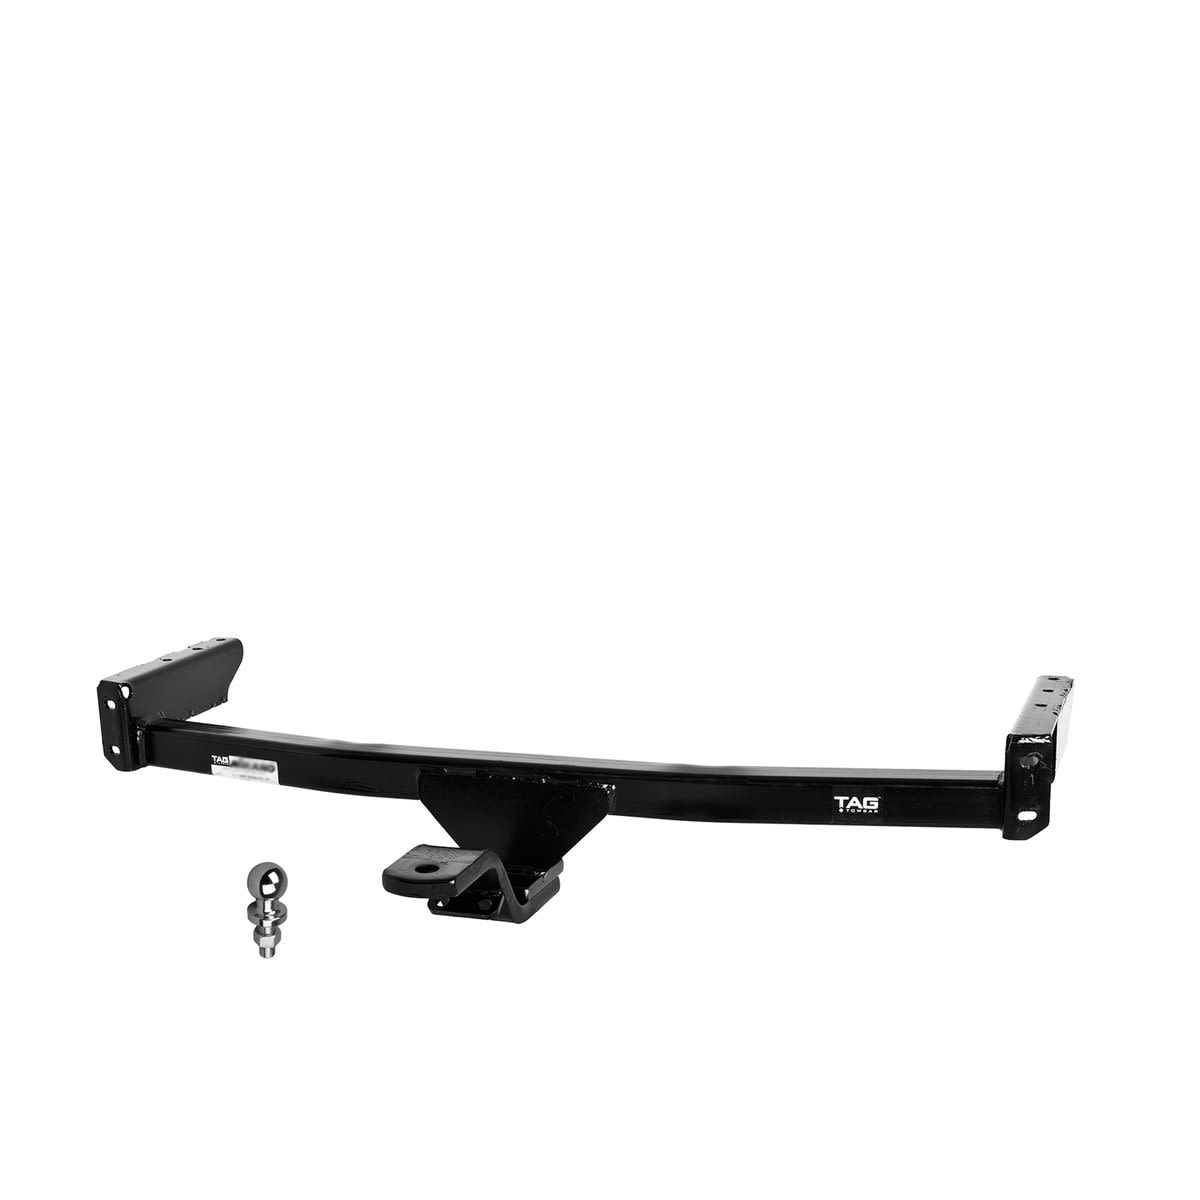 TAG Light Duty Towbar to suit Holden Commodore (01/2006 - 01/2013) - No Wiring Harness